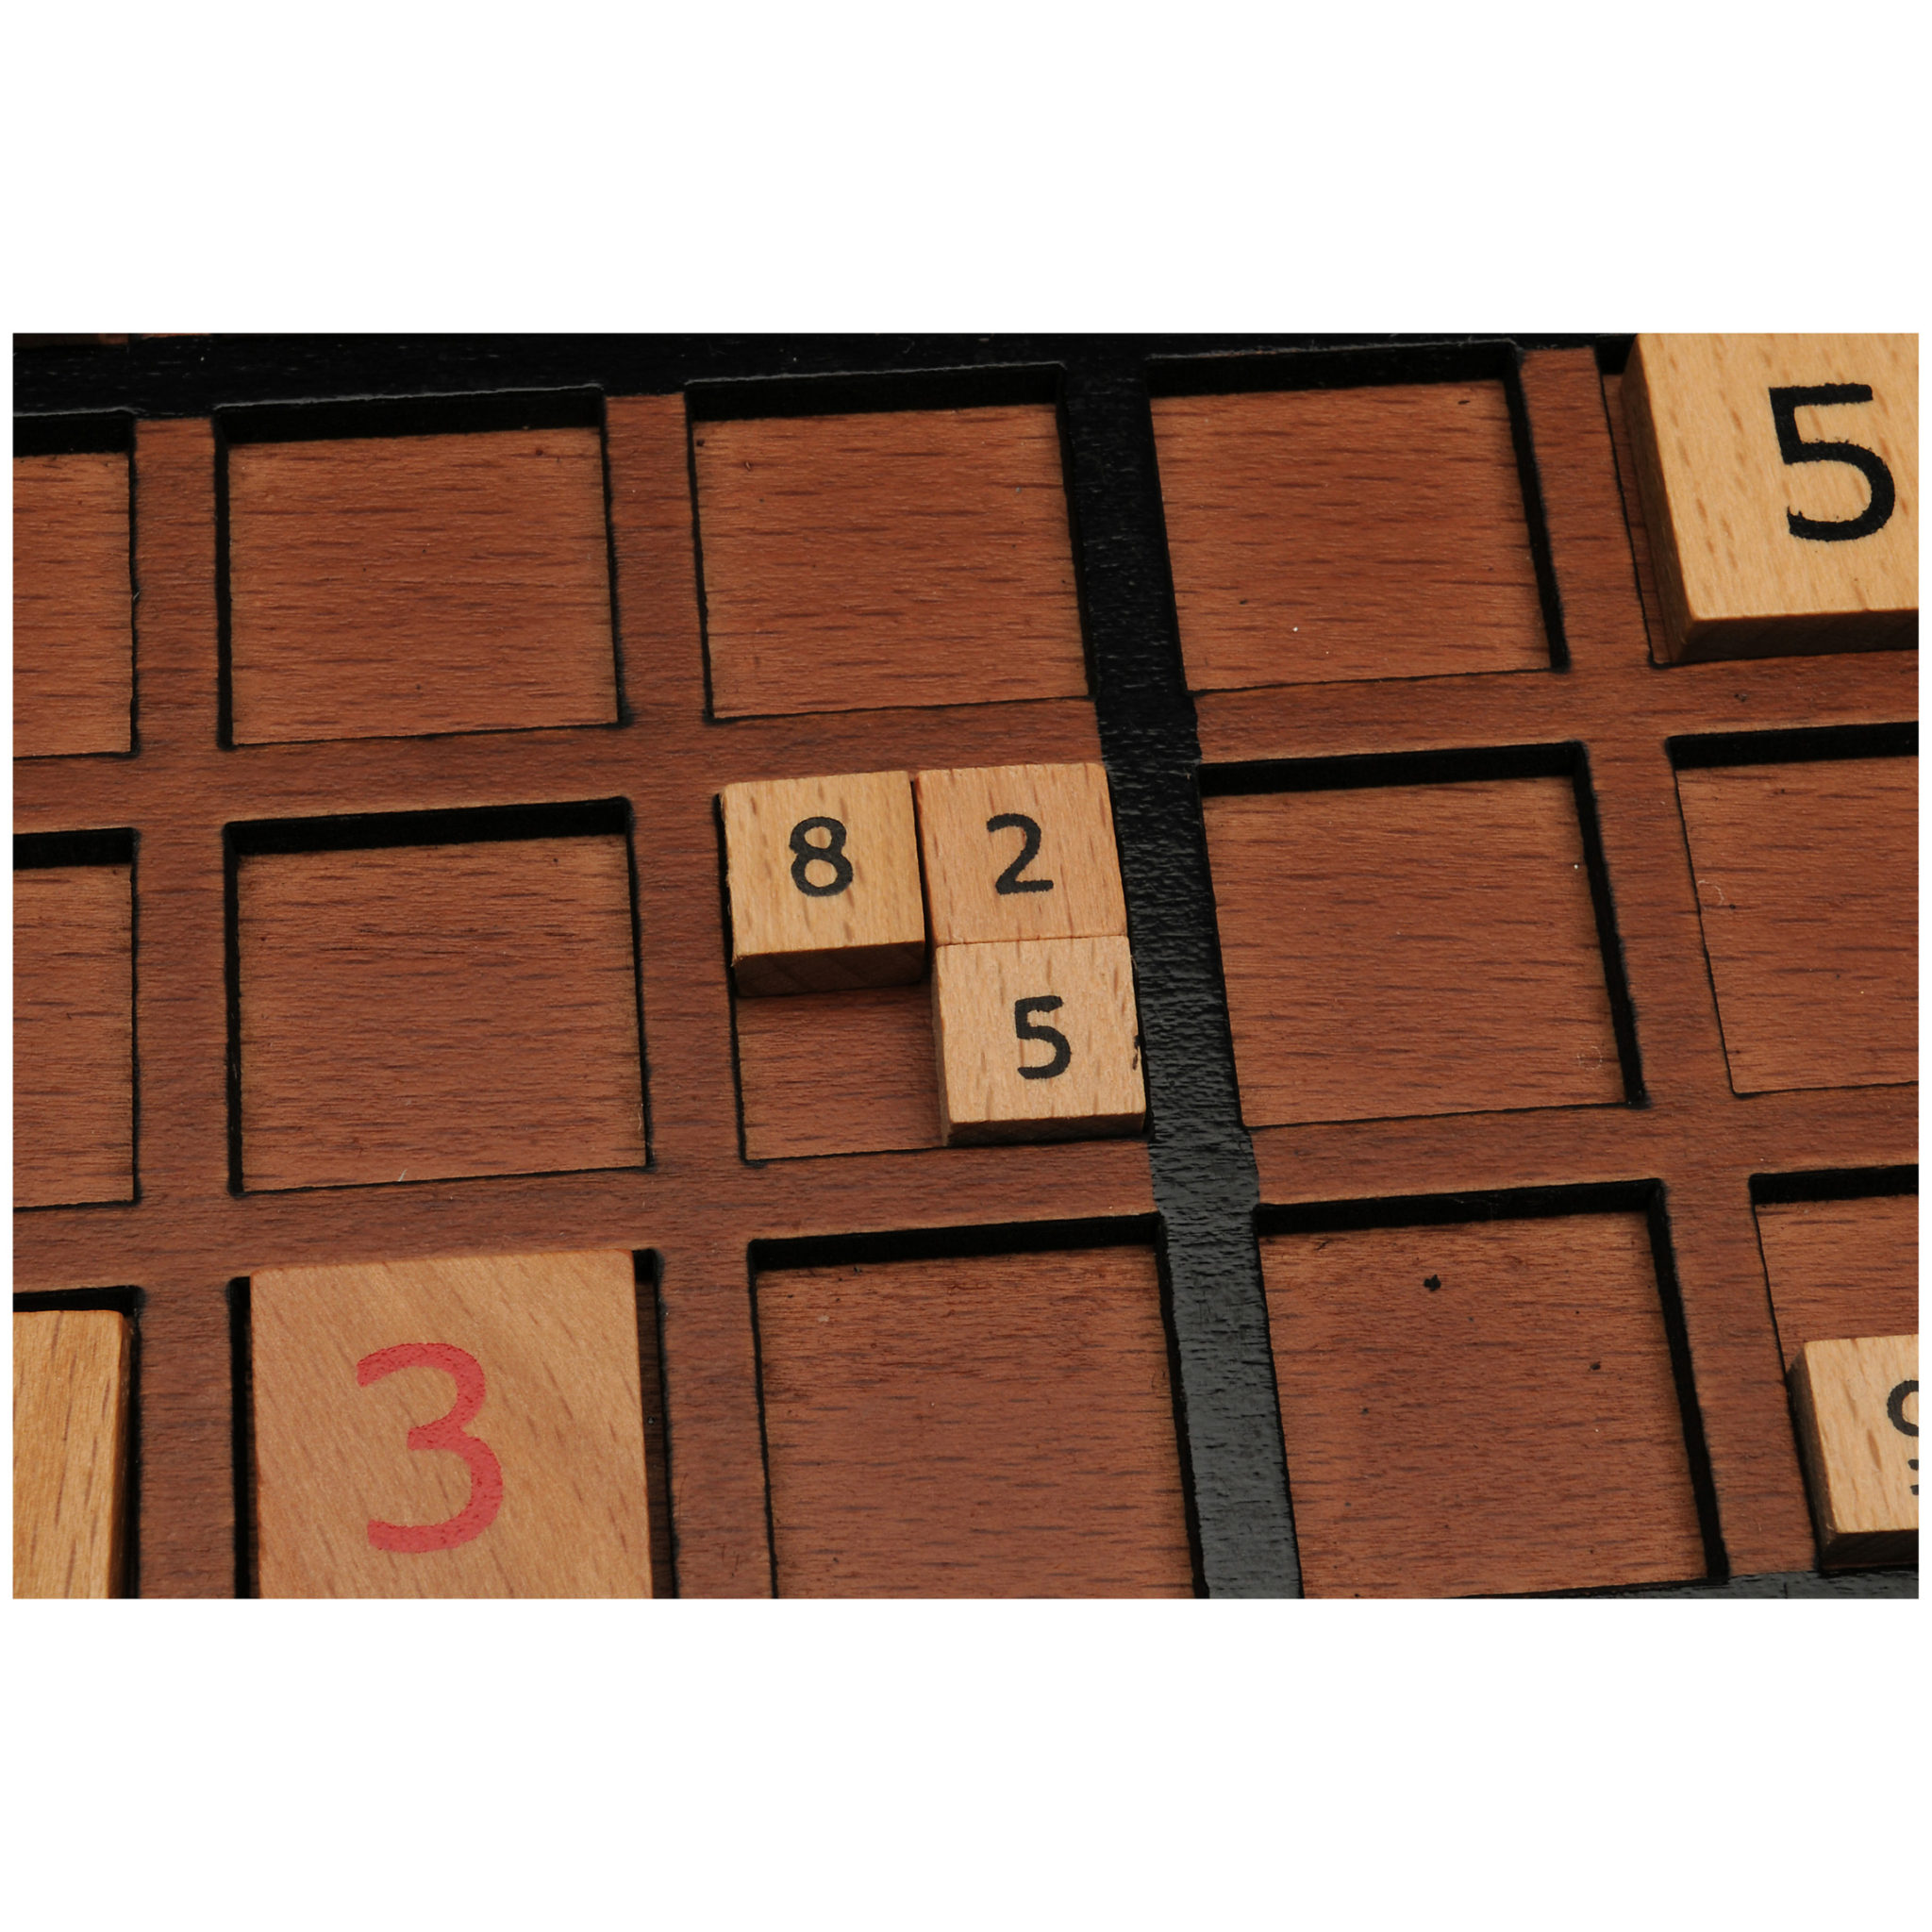 Sudoku Board With Storage Slots Wood Expressions